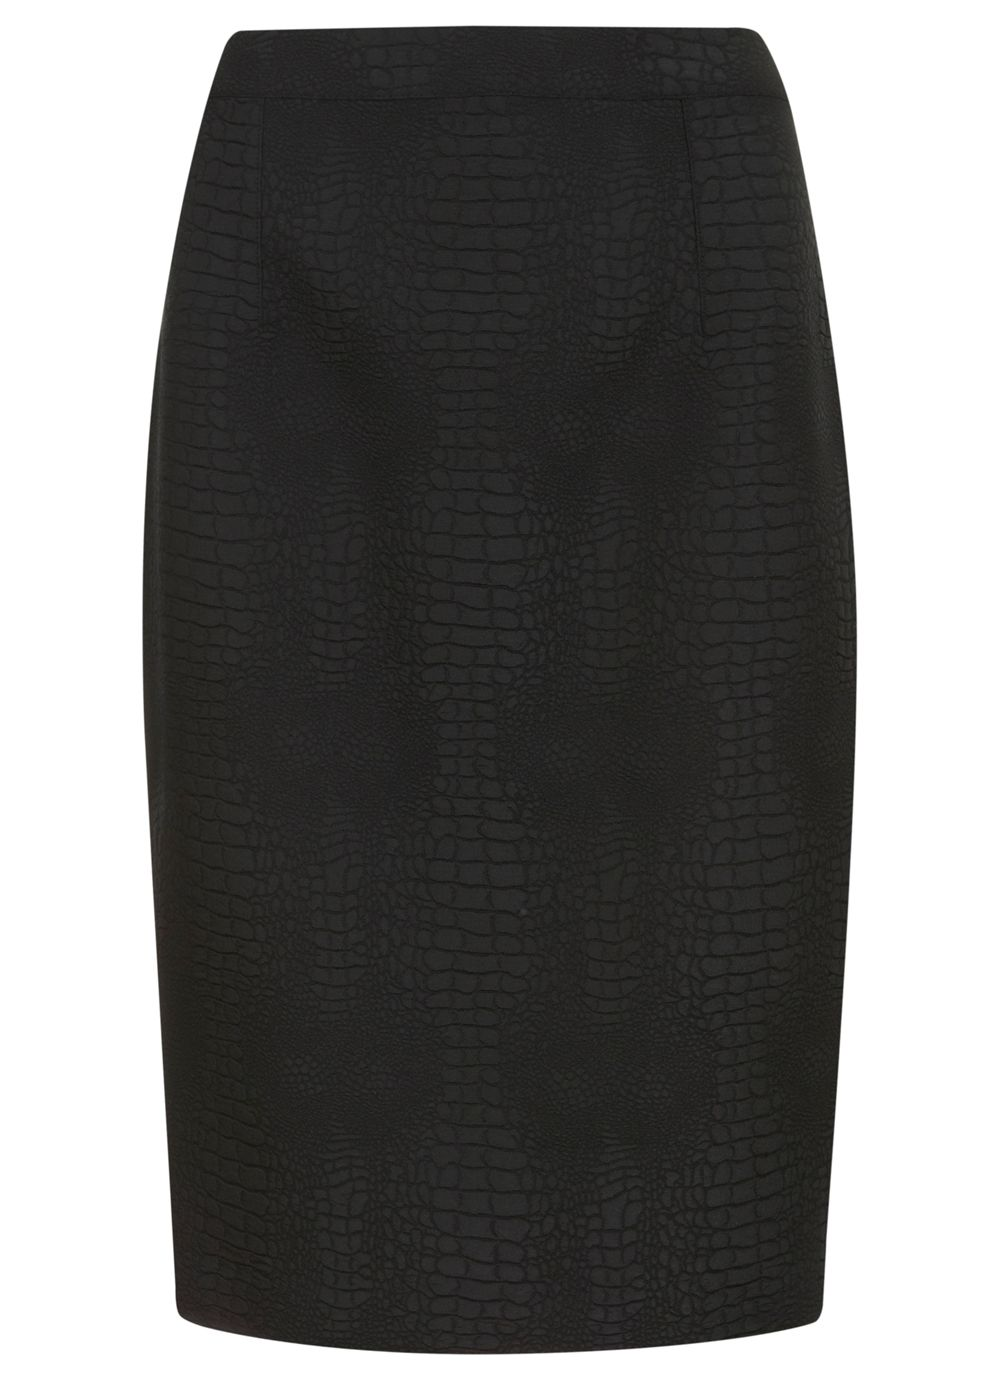 Black animal pencil skirt